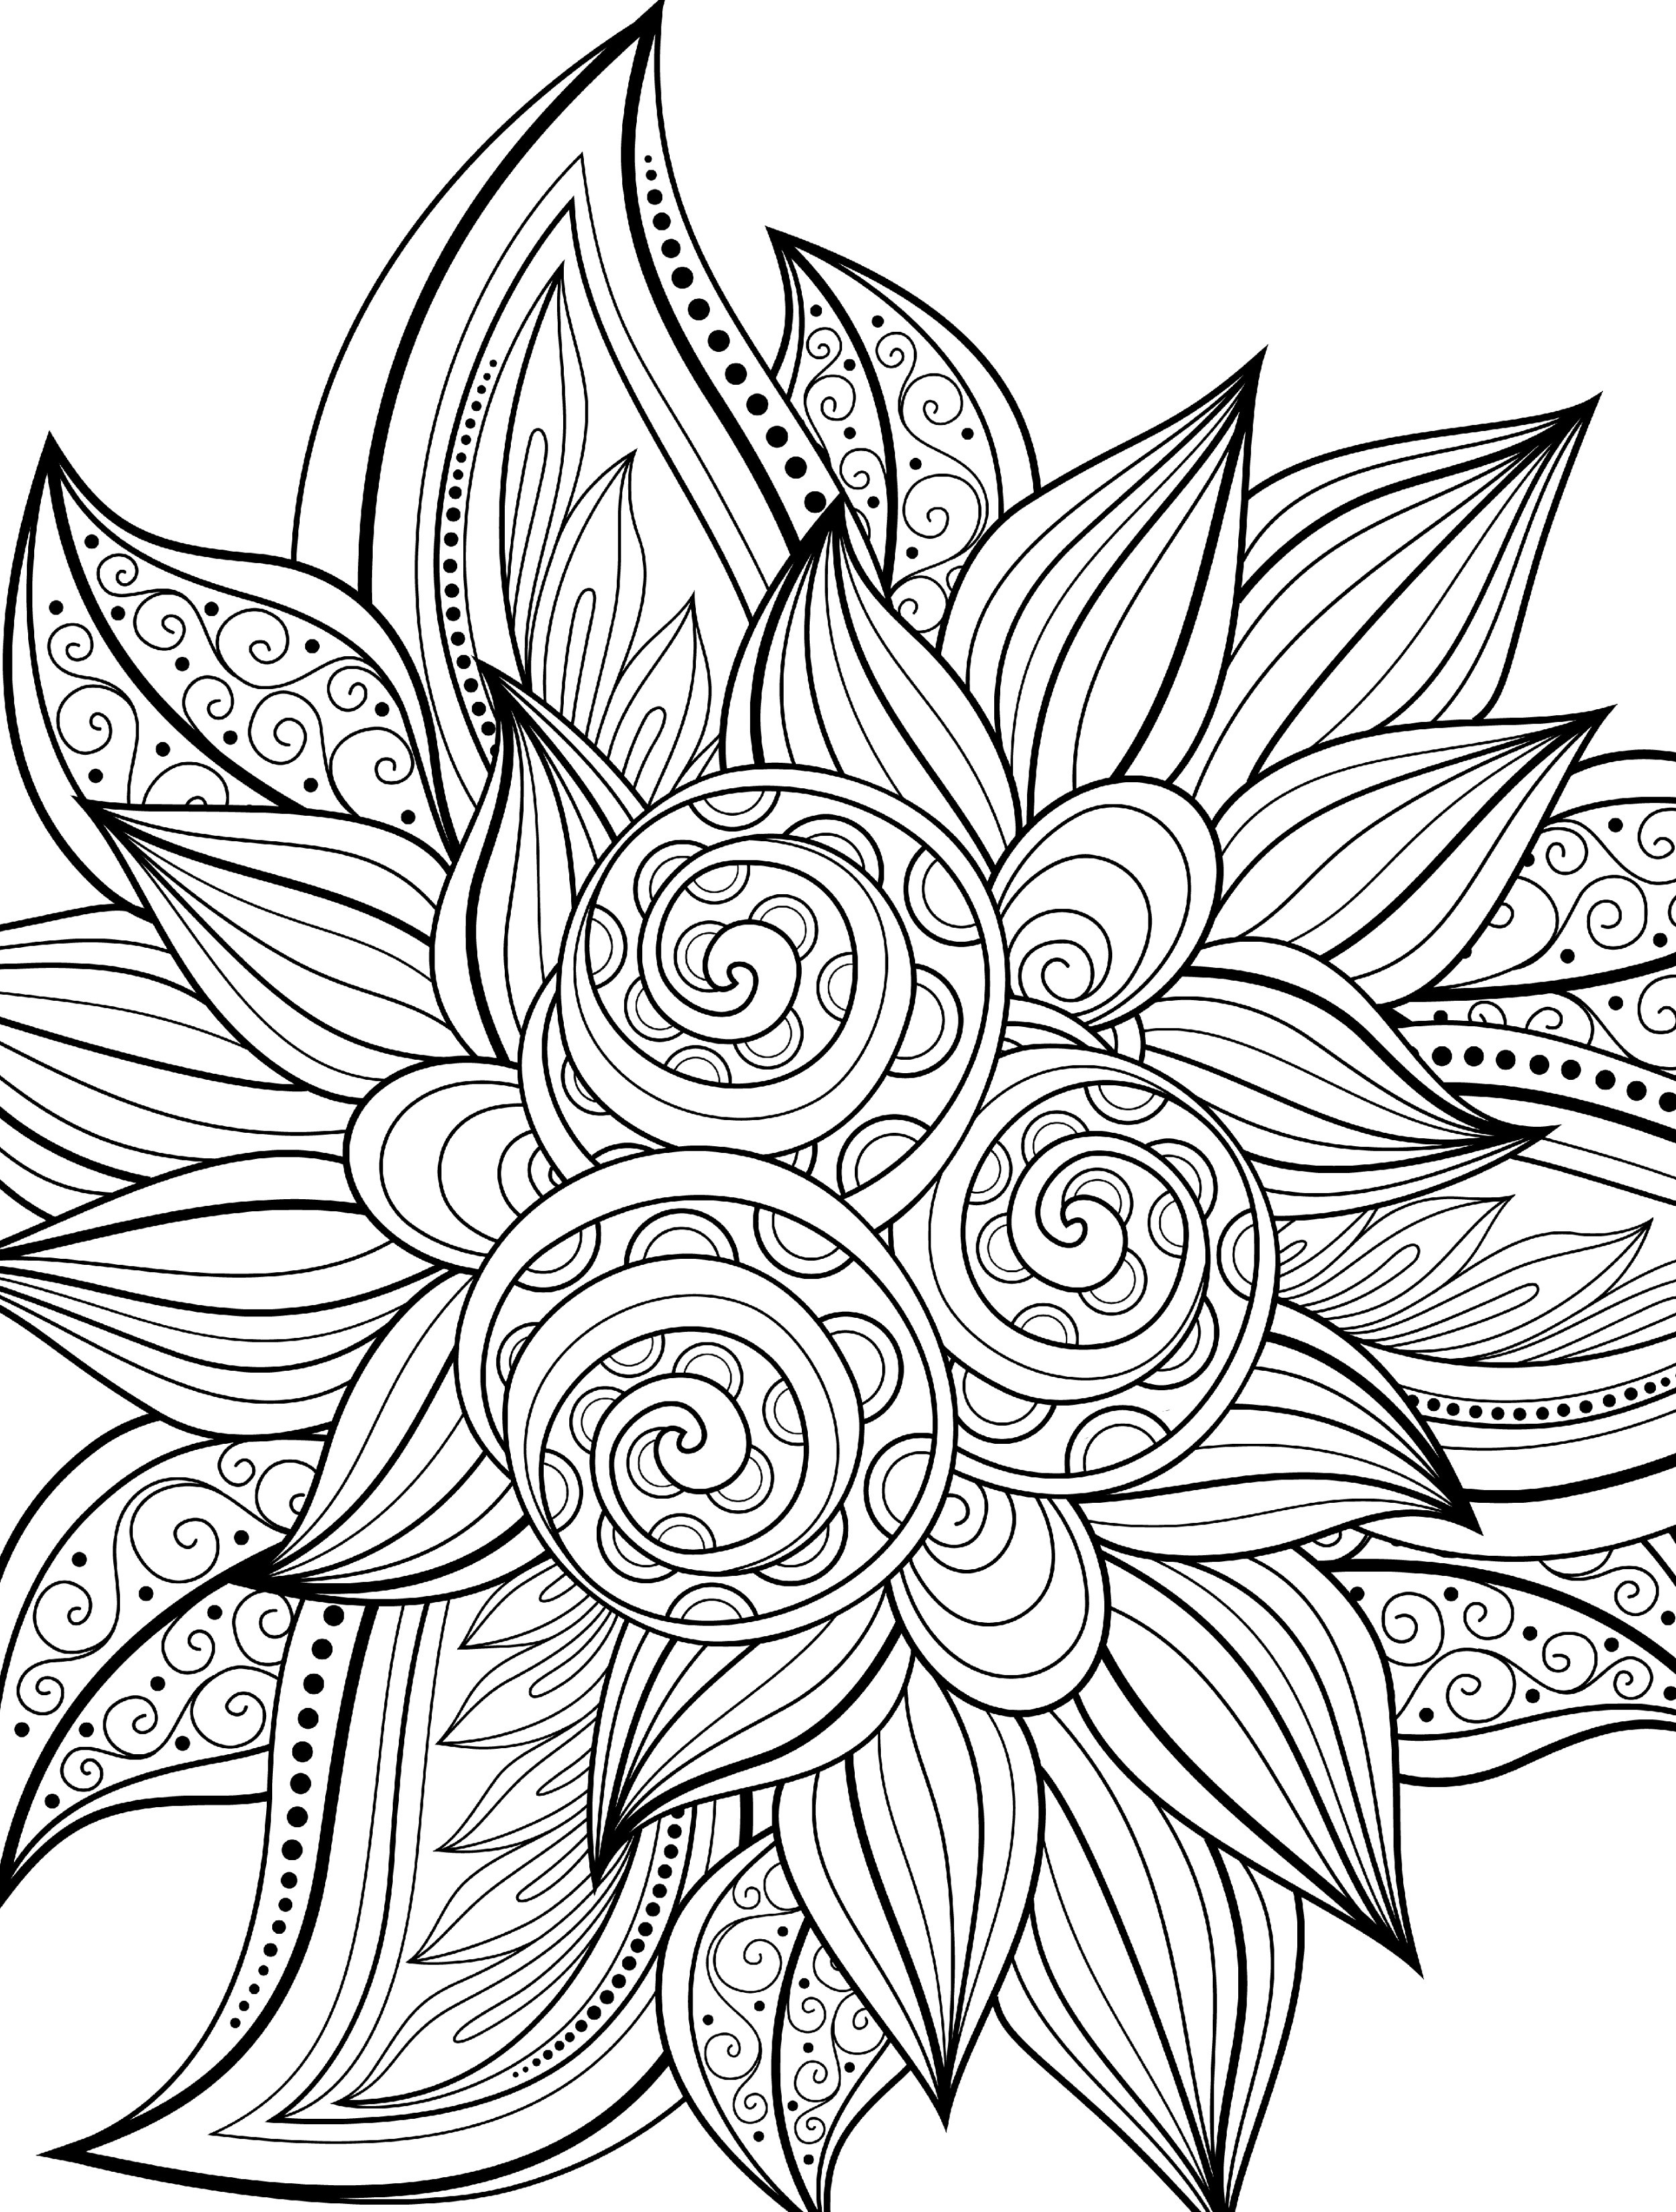 Best ideas about Free Printable Adult Coloring Pages . Save or Pin 10 Free Printable Holiday Adult Coloring Pages Now.